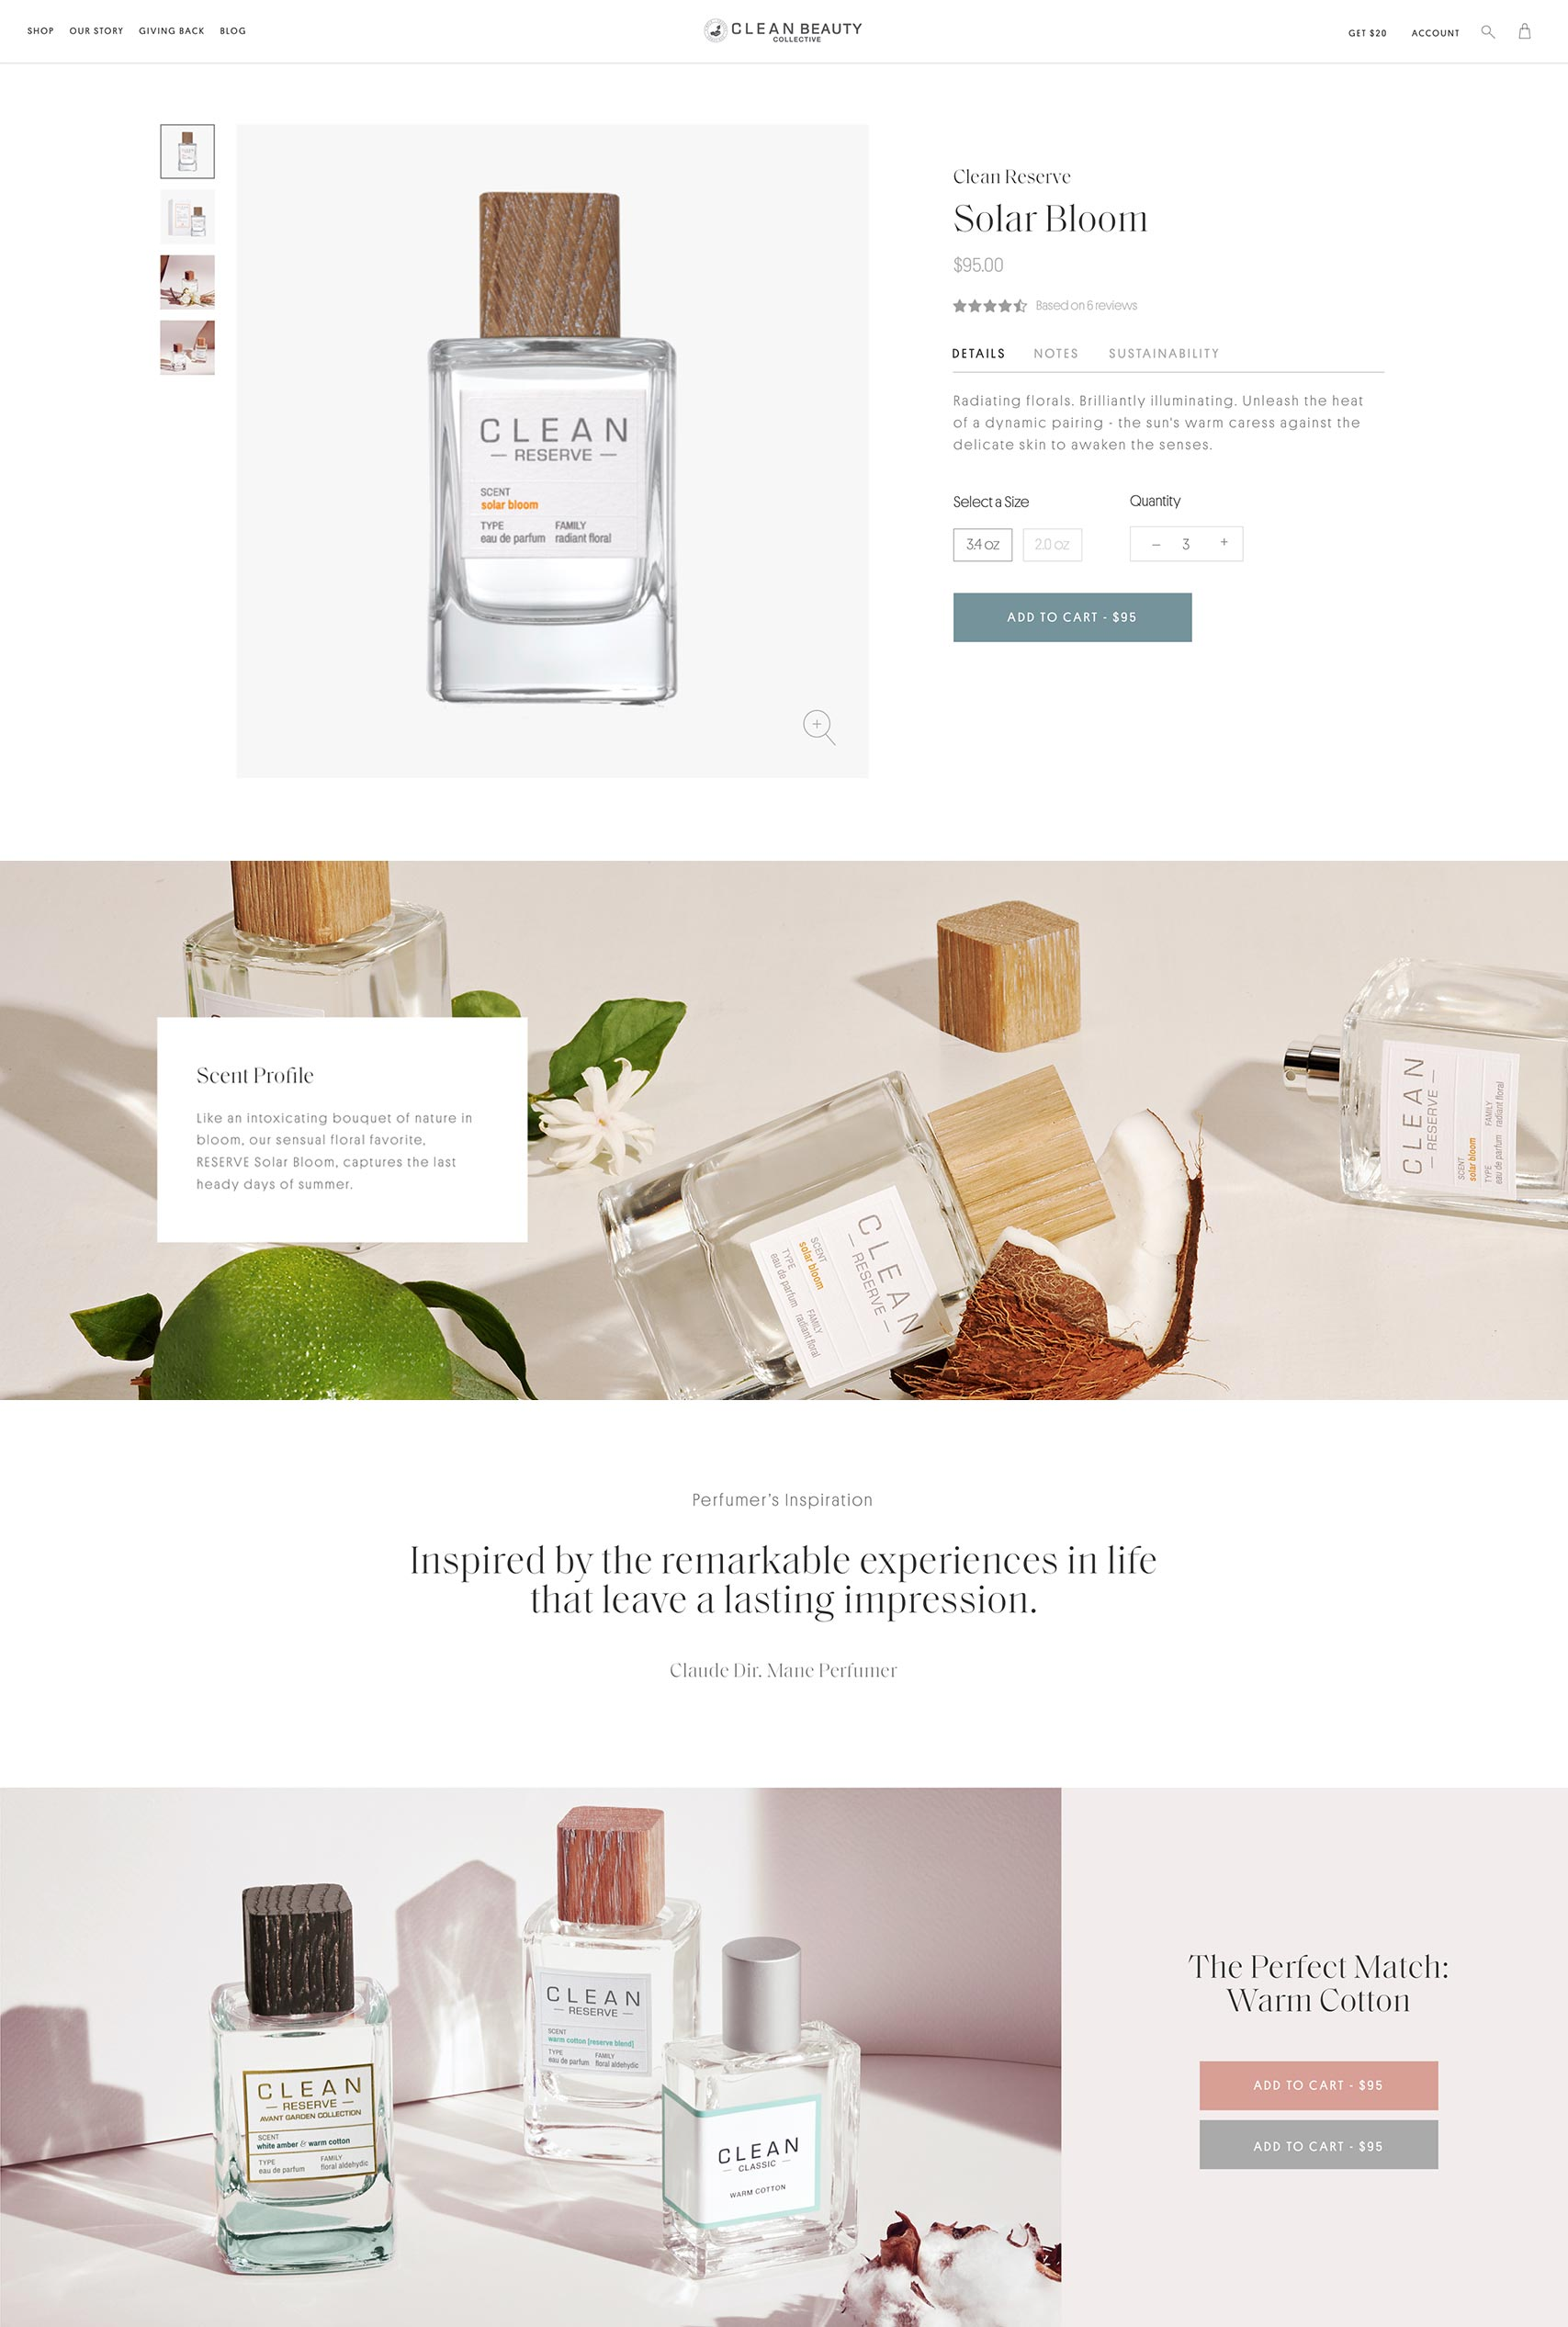 CLEAN-Product-page-1